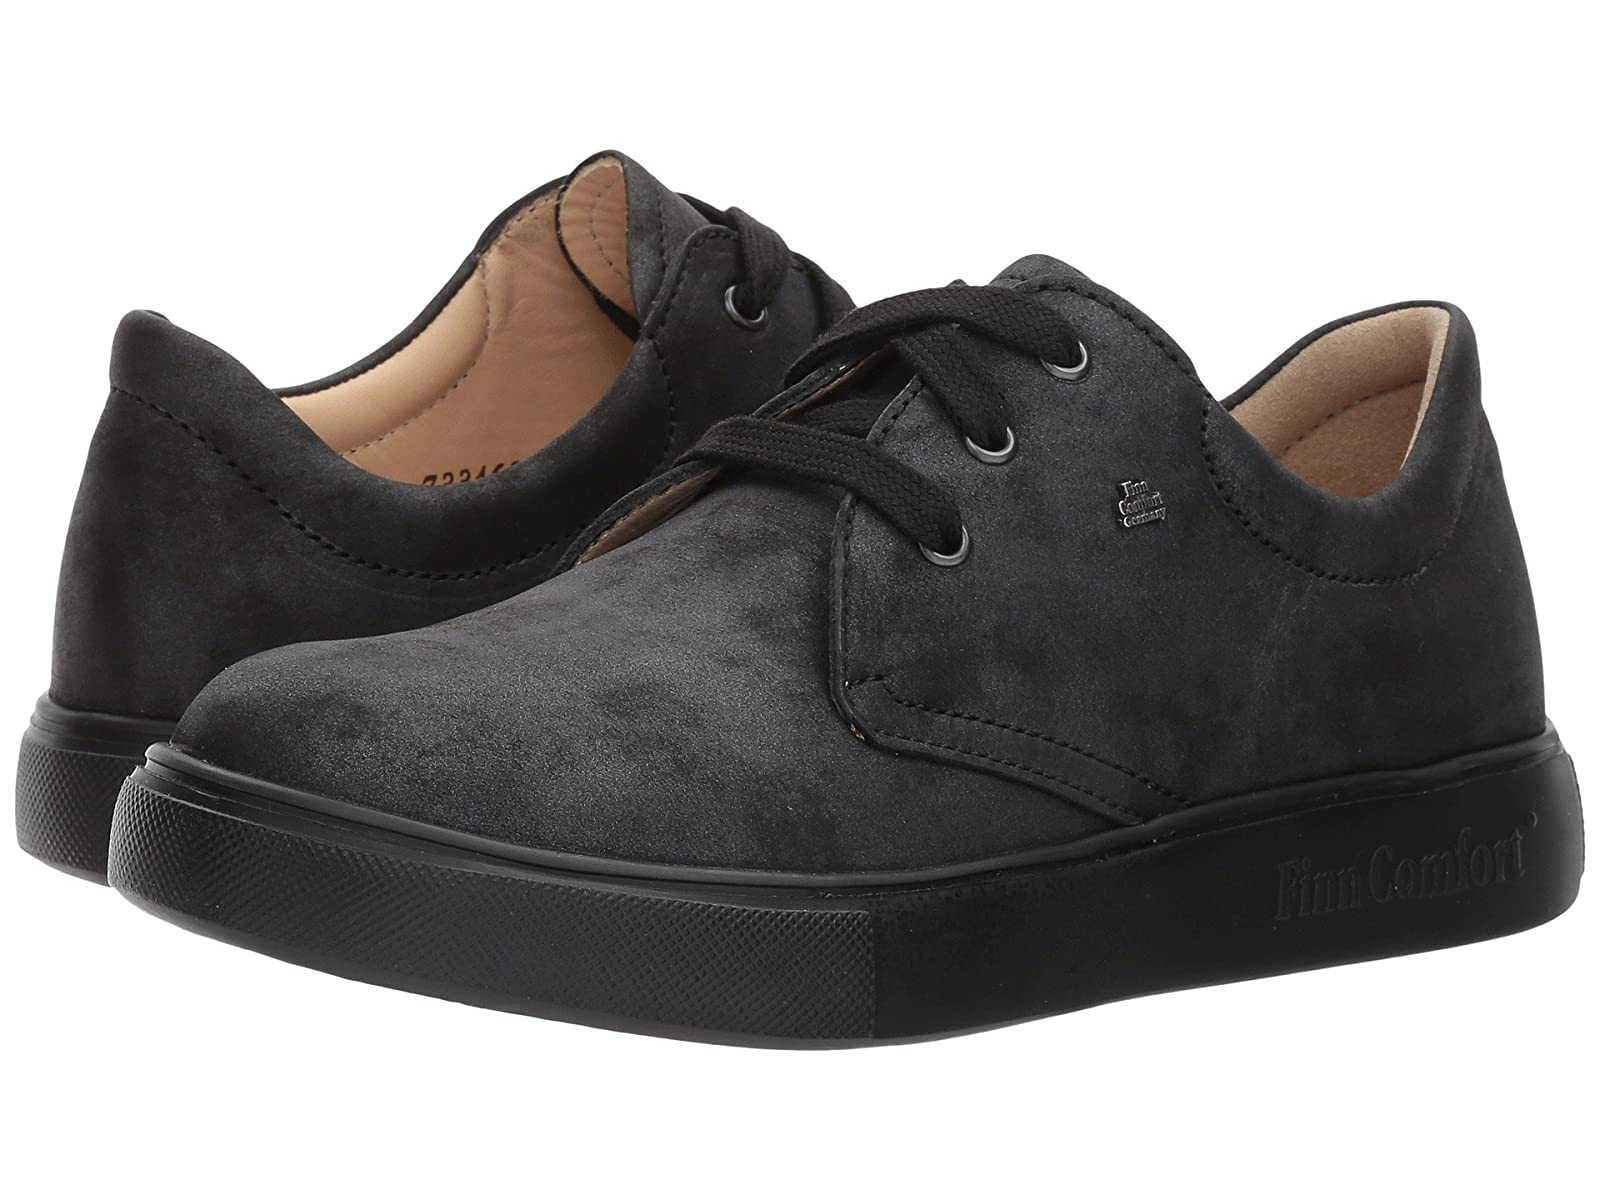 Finn Comfort ClermontCheap and distinctive eye-catching shoes